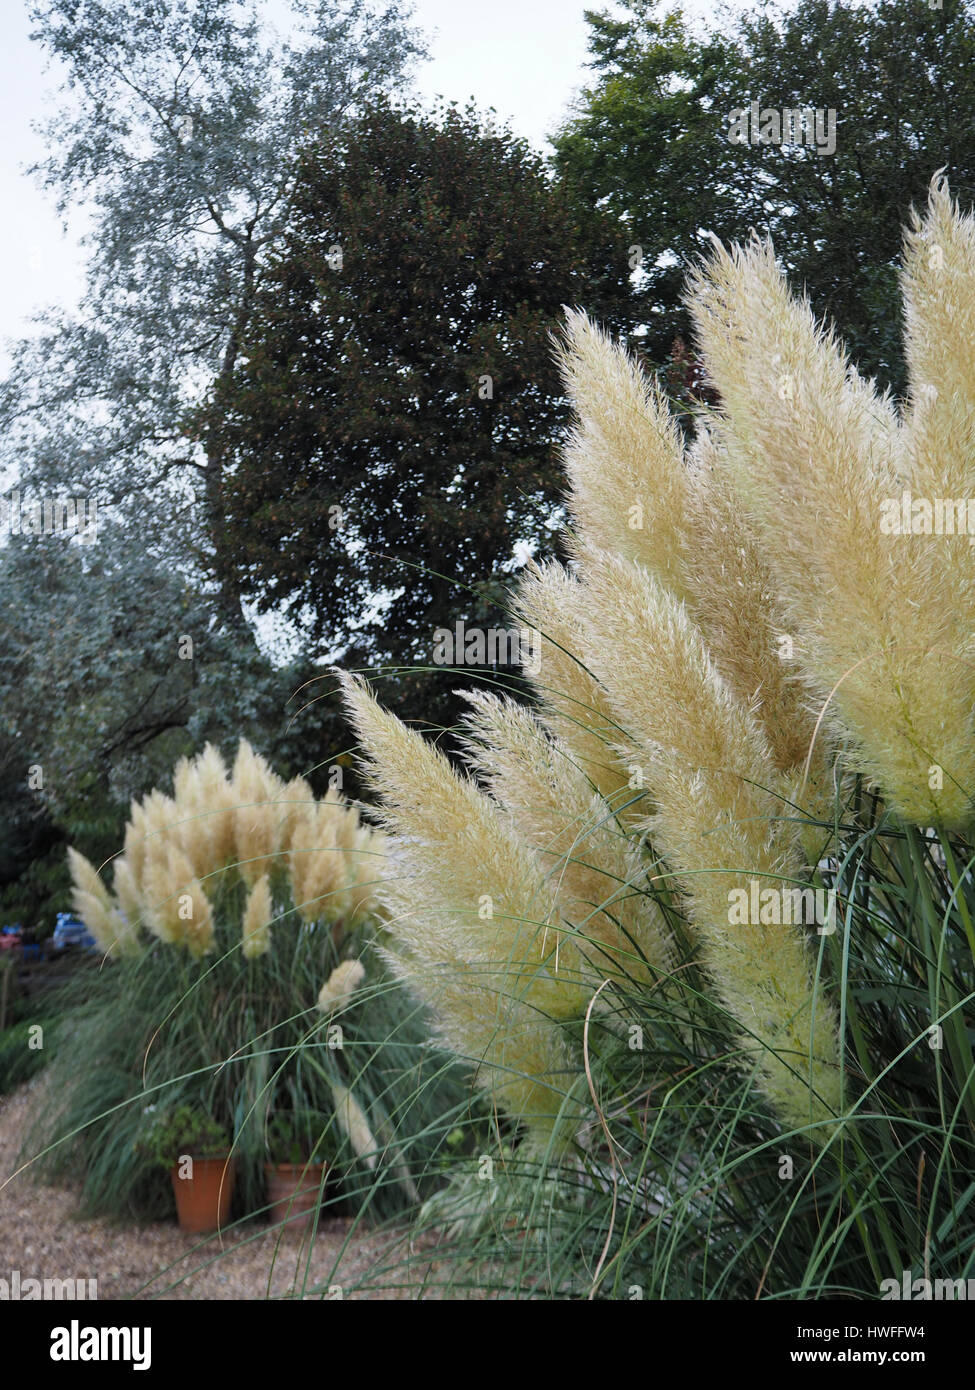 Pampas grass plumes and trees in Chenies Manor kitchen garden in autumn. Shades of green and texture detail. - Stock Image